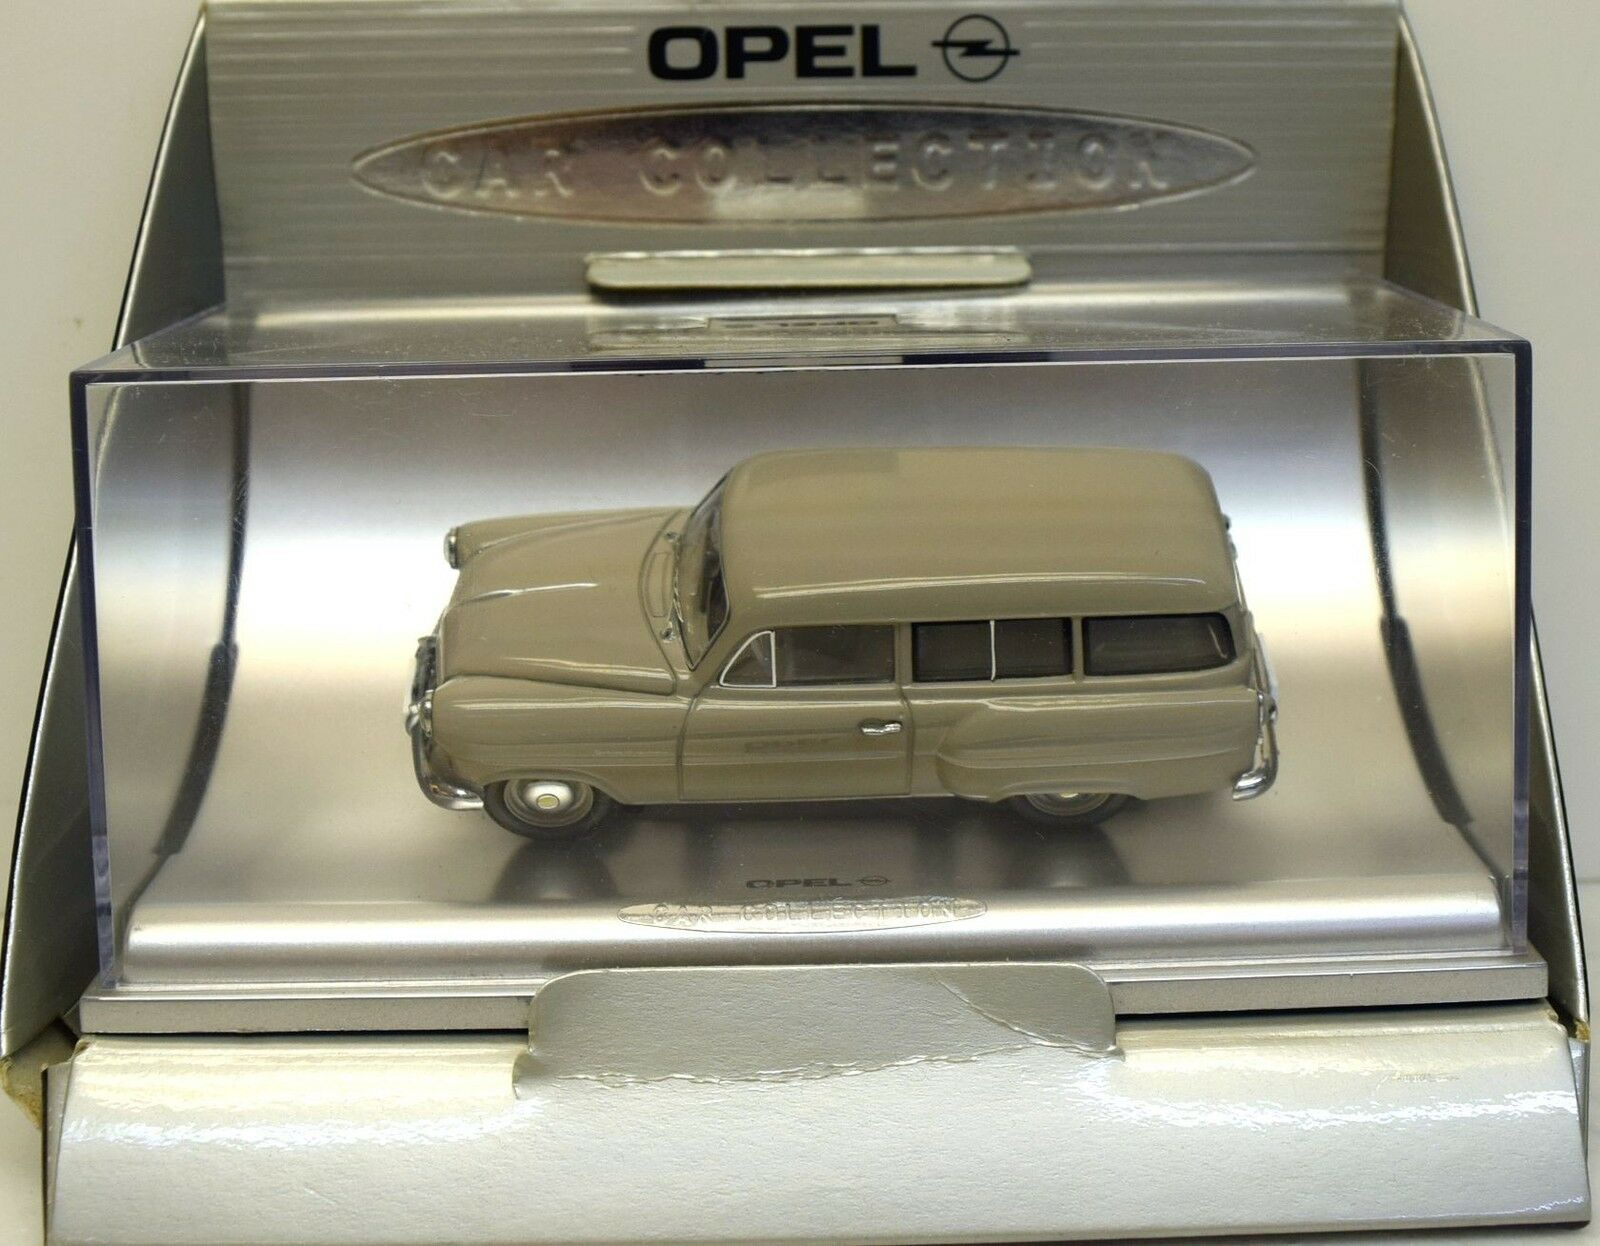 Opel Opel Opel Car Collection Opel Olympia Caravan, 1953, grey 1 43 7afb73